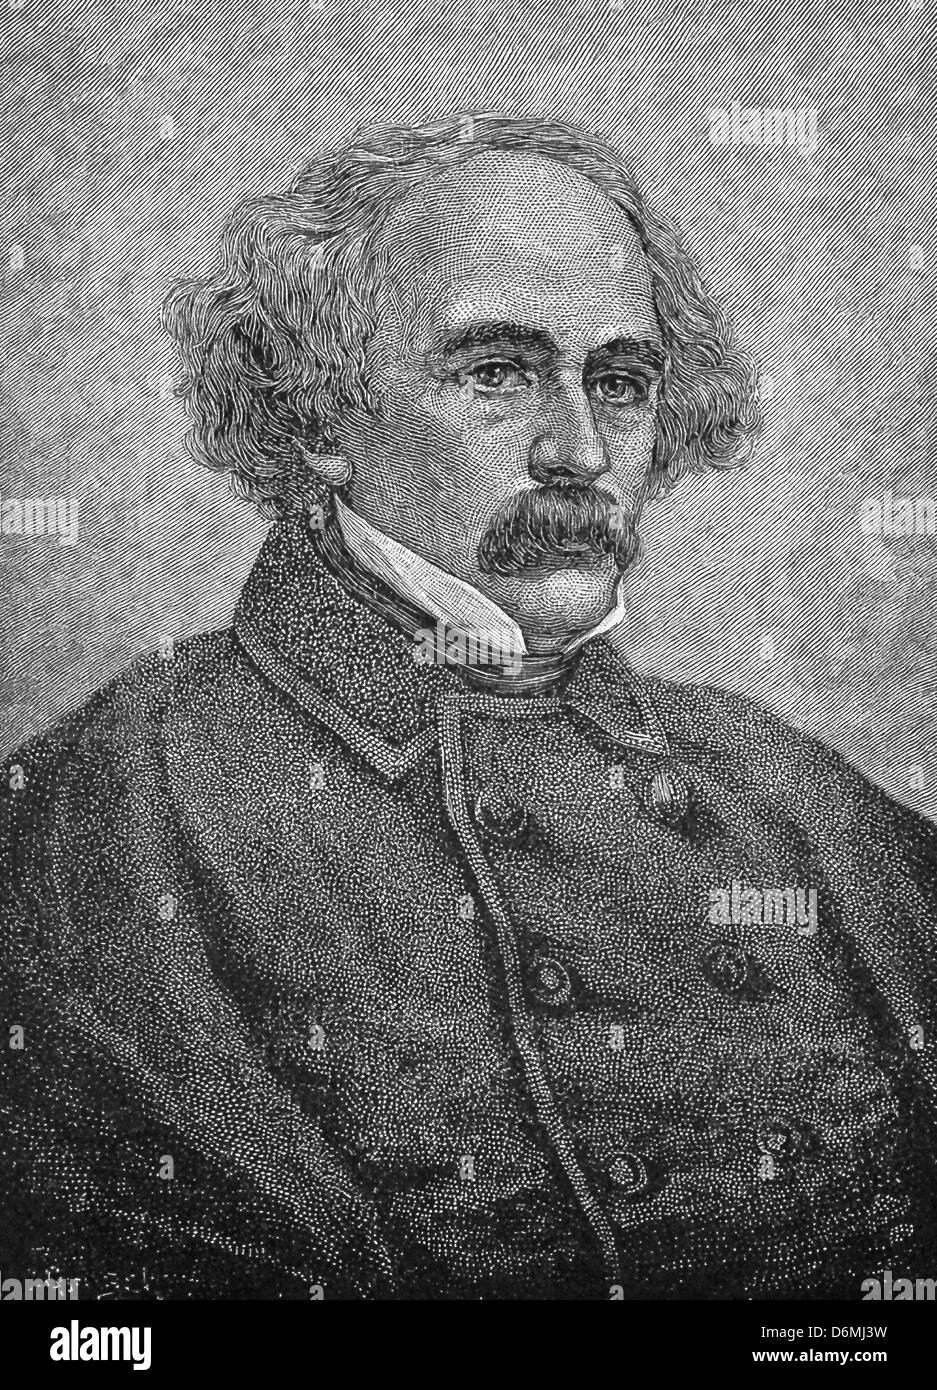 American novelist and short story writer Nathaniel Hawthorne wrote